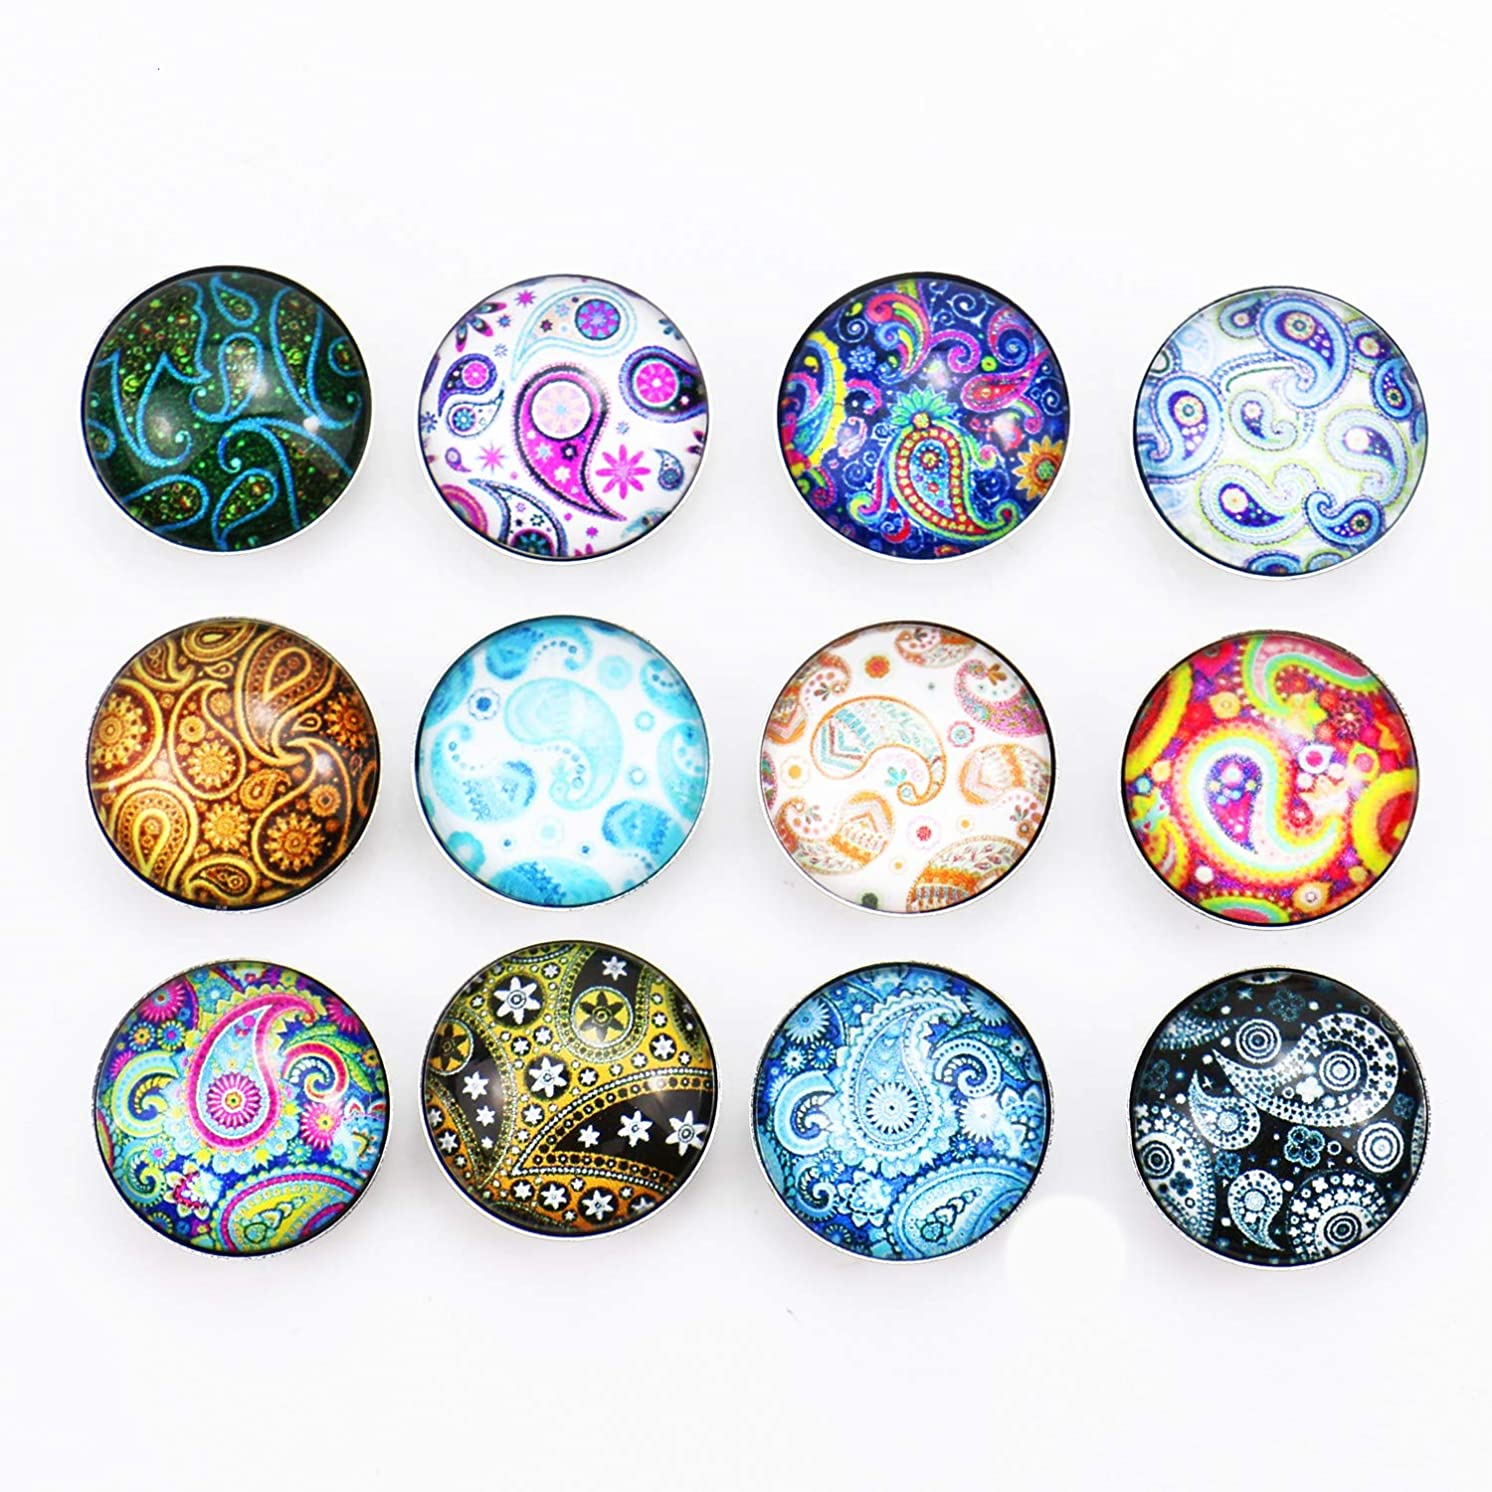 Monrocco 12Pcs Mixed 18mm Snap Button Jewelry Charms for Jewelry Making,DIY Accessories